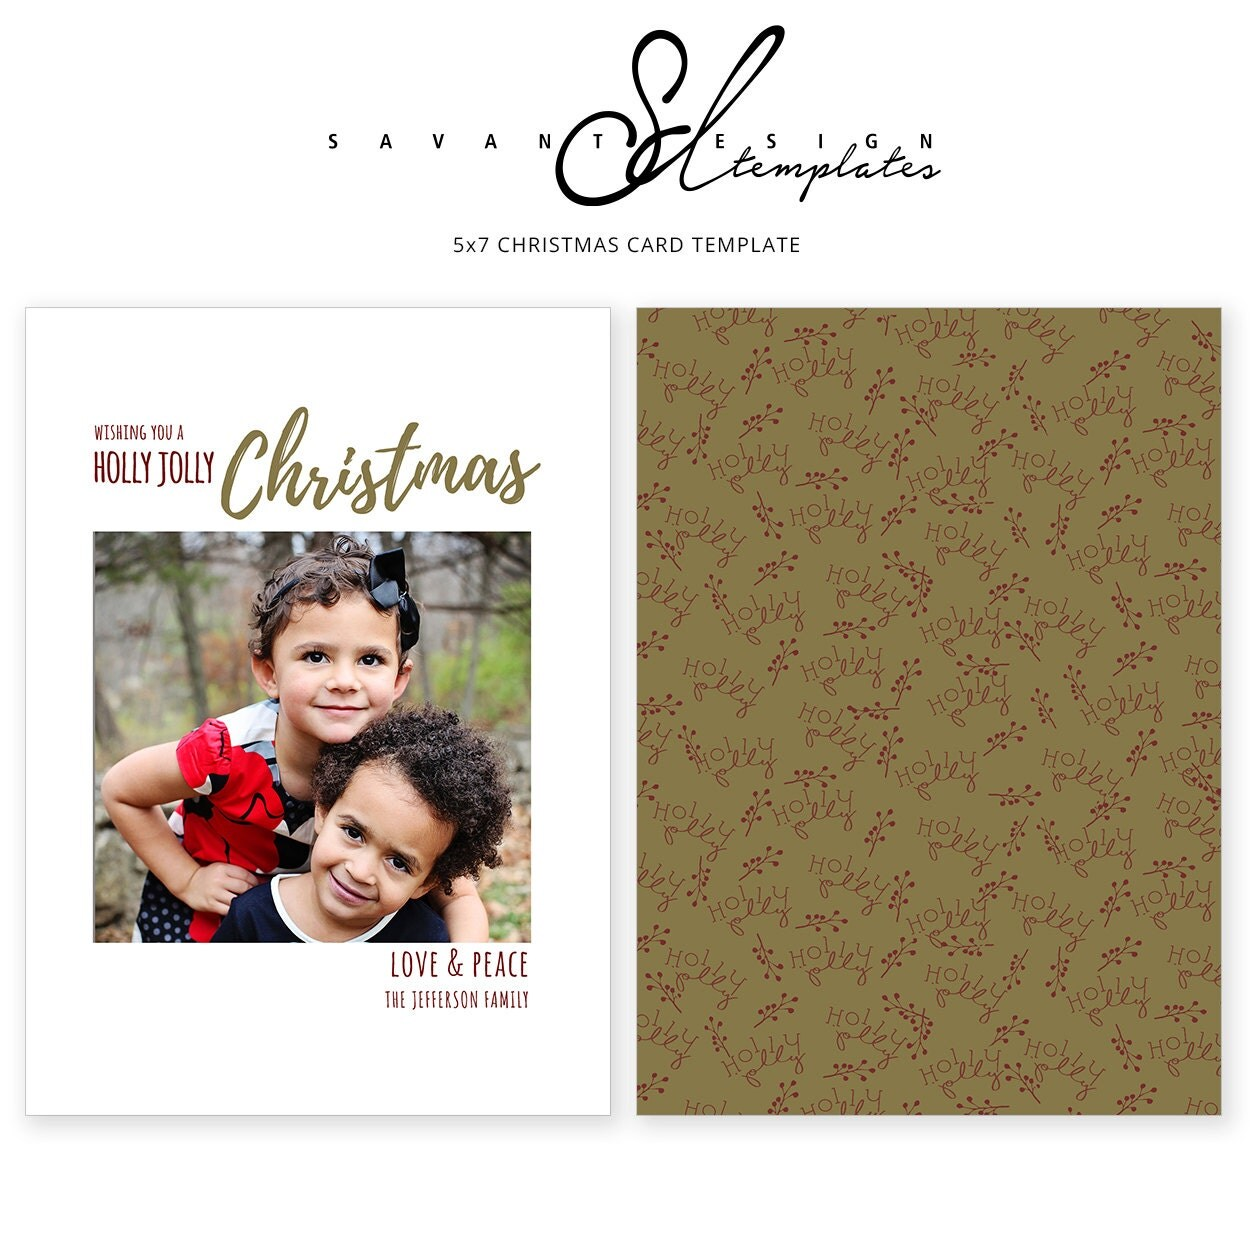 Photo Christmas Card Holly Jolly Christmas Card Christmas Card